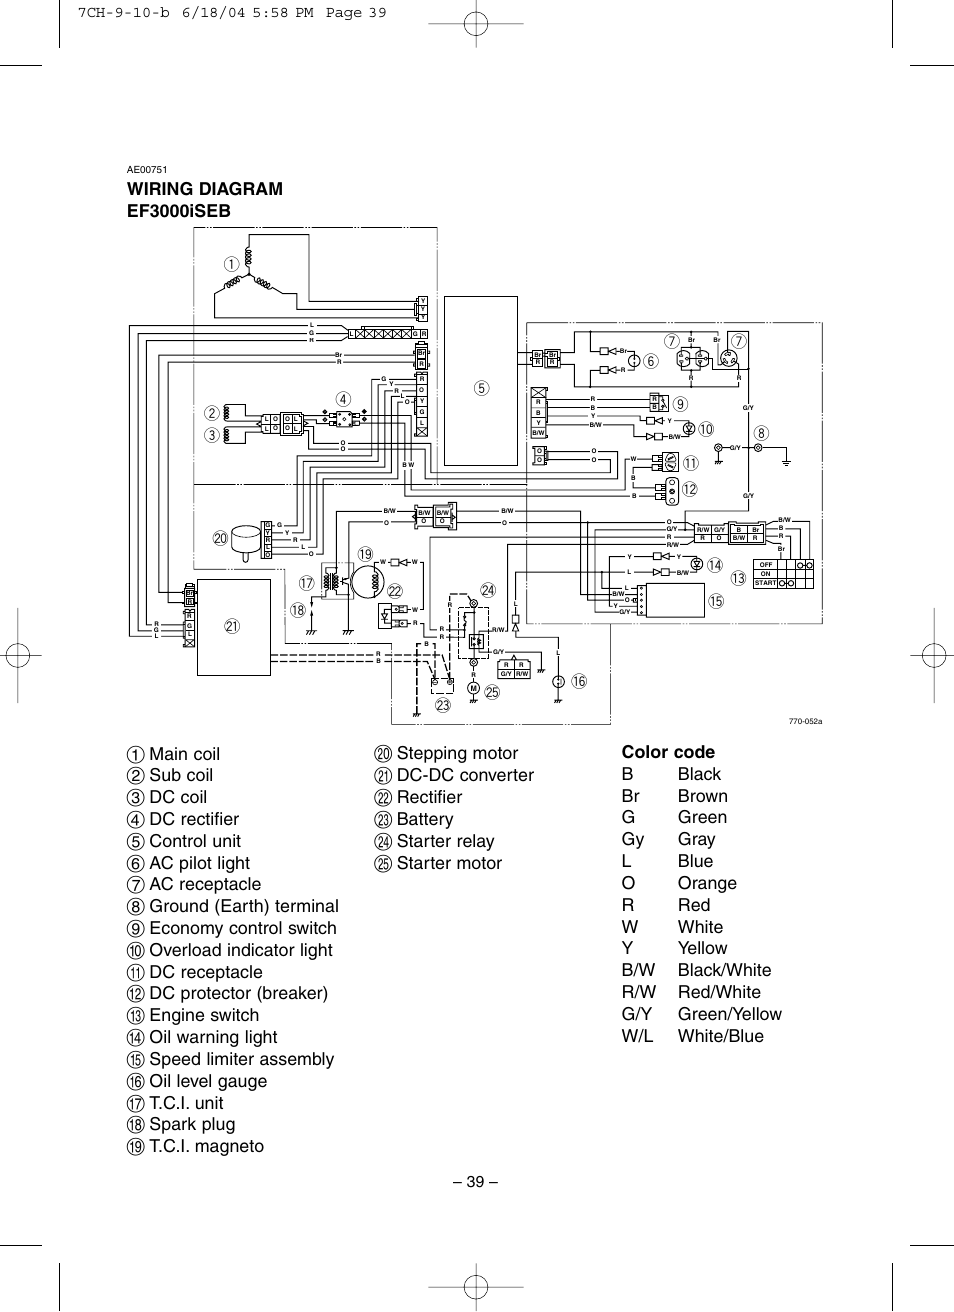 yamaha ef3000ise user manual